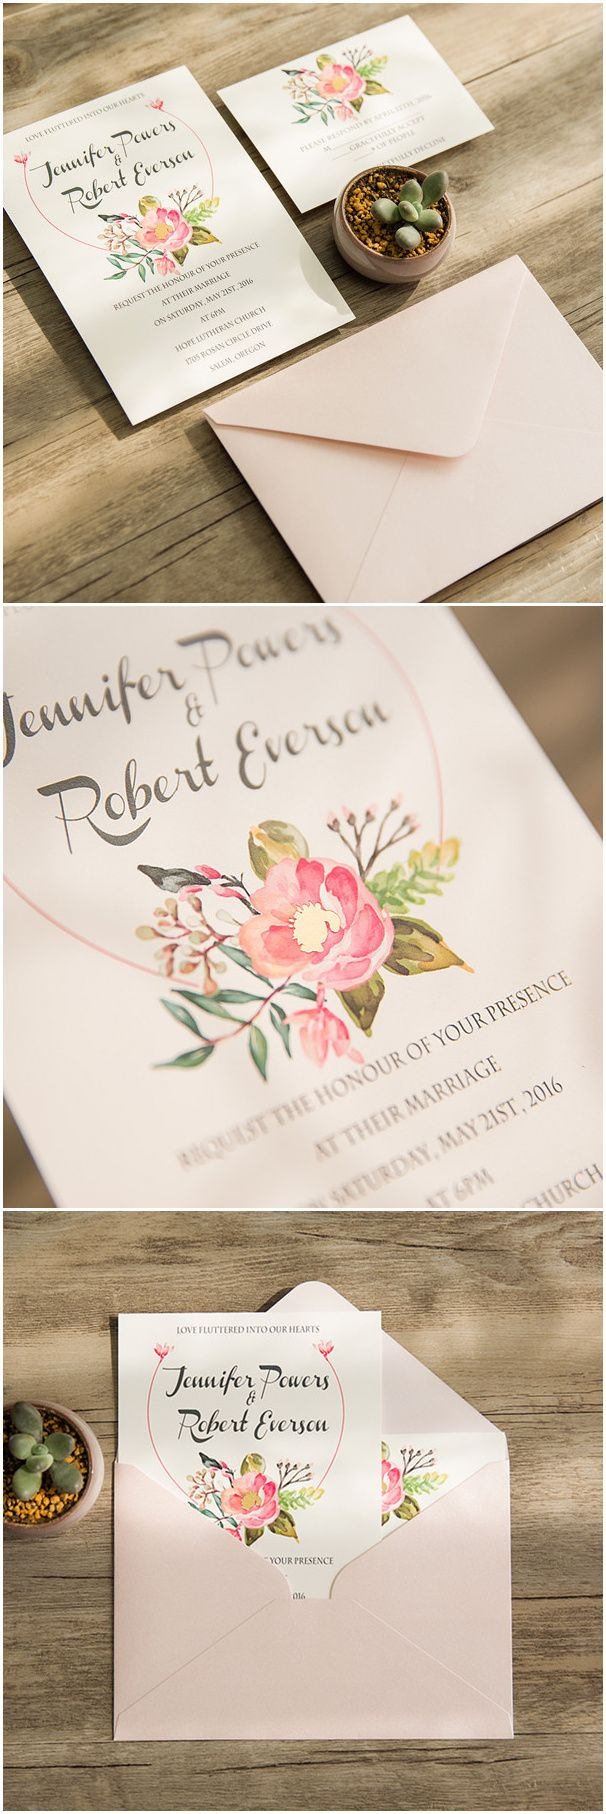 chic foiled floral wedding invitations for spring and summer weddings @elegantwinvites